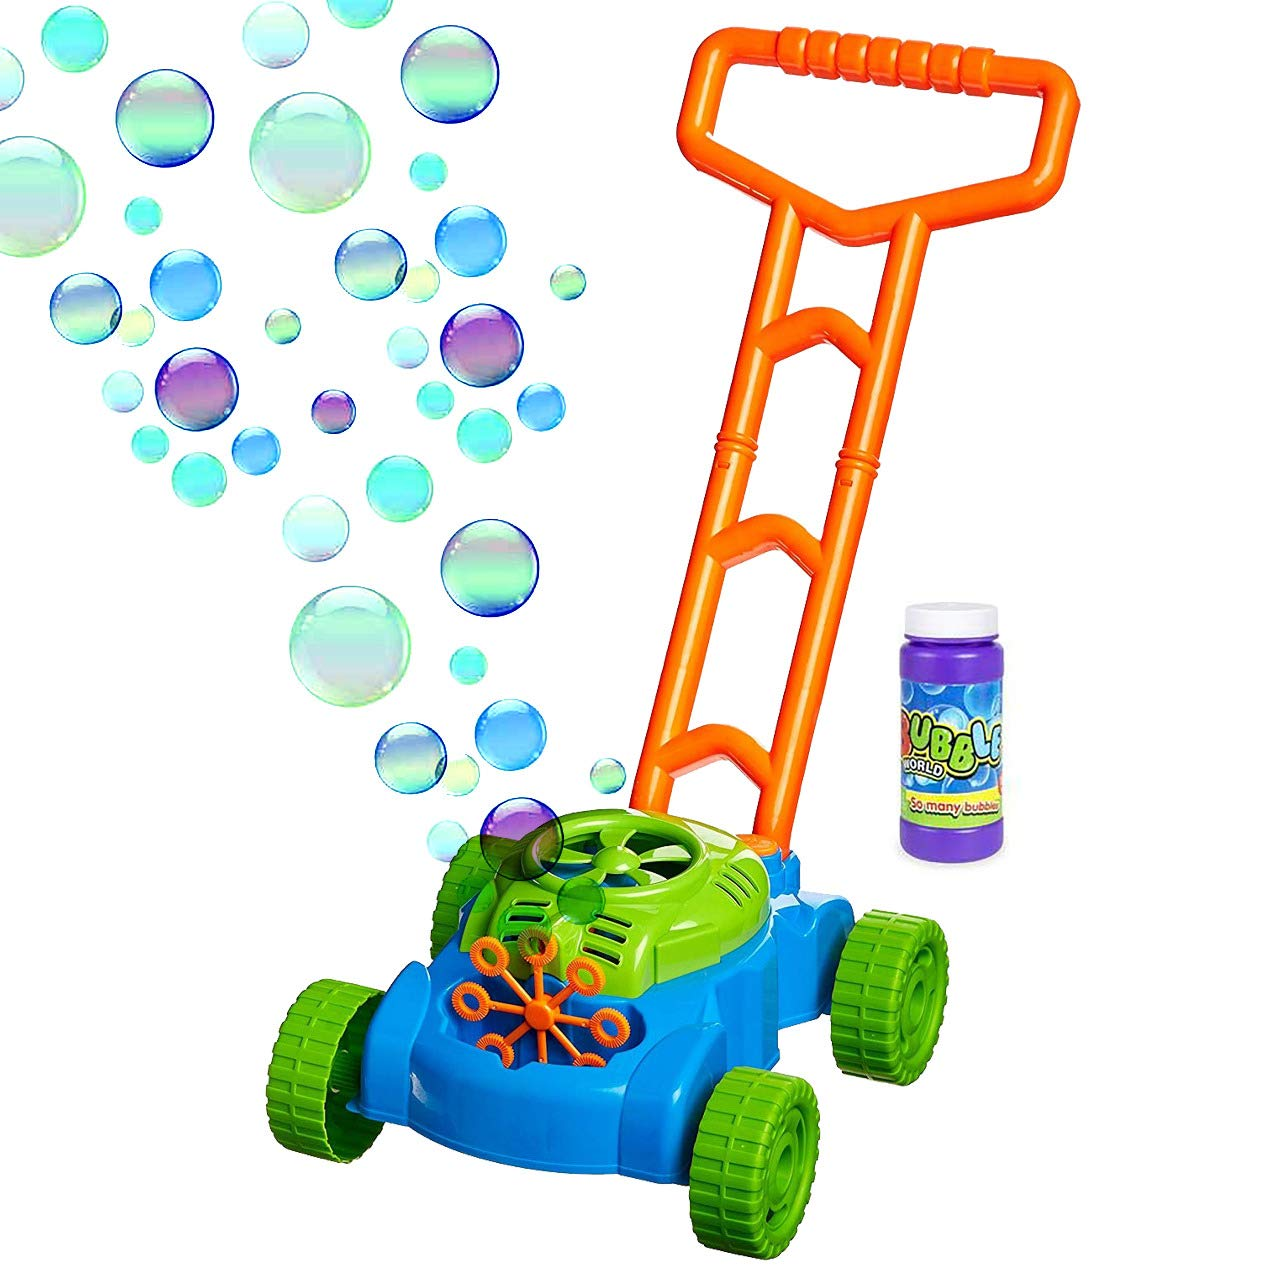 Top 6 Best Bubble Lawn Mower for Kids & Toddlers (2019 Reviews) 4